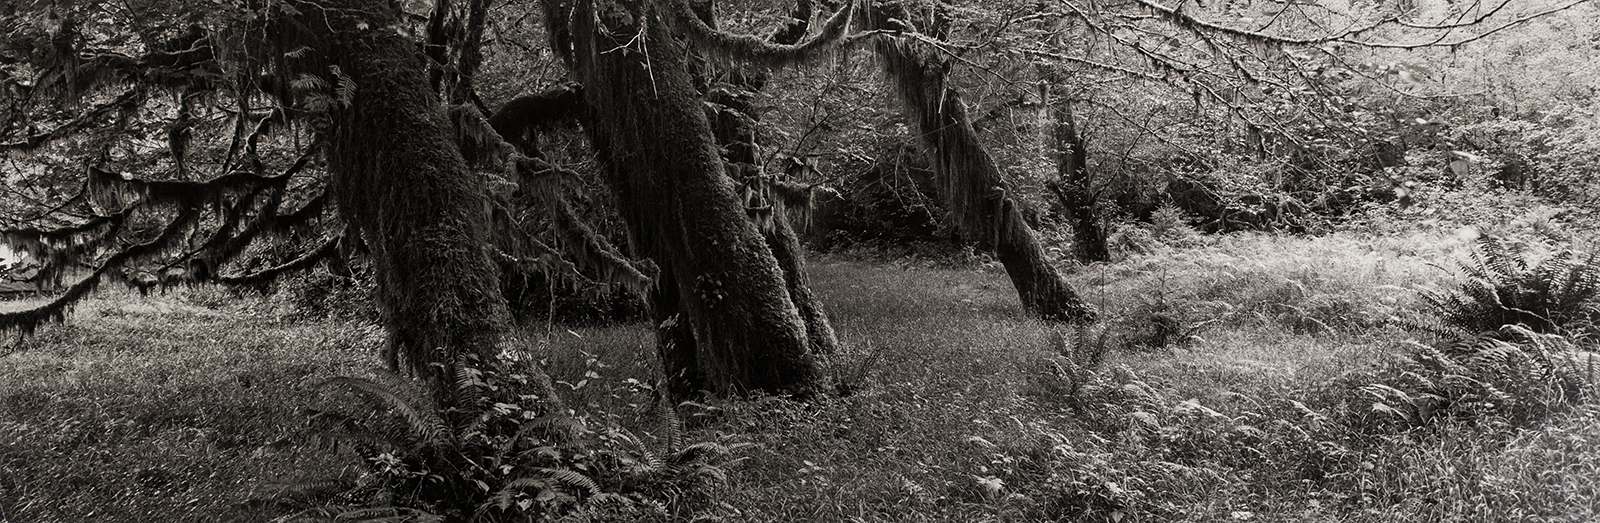 Mary Peck, South Fork, Hoh River Valley, Olympic Peninsula, Wash